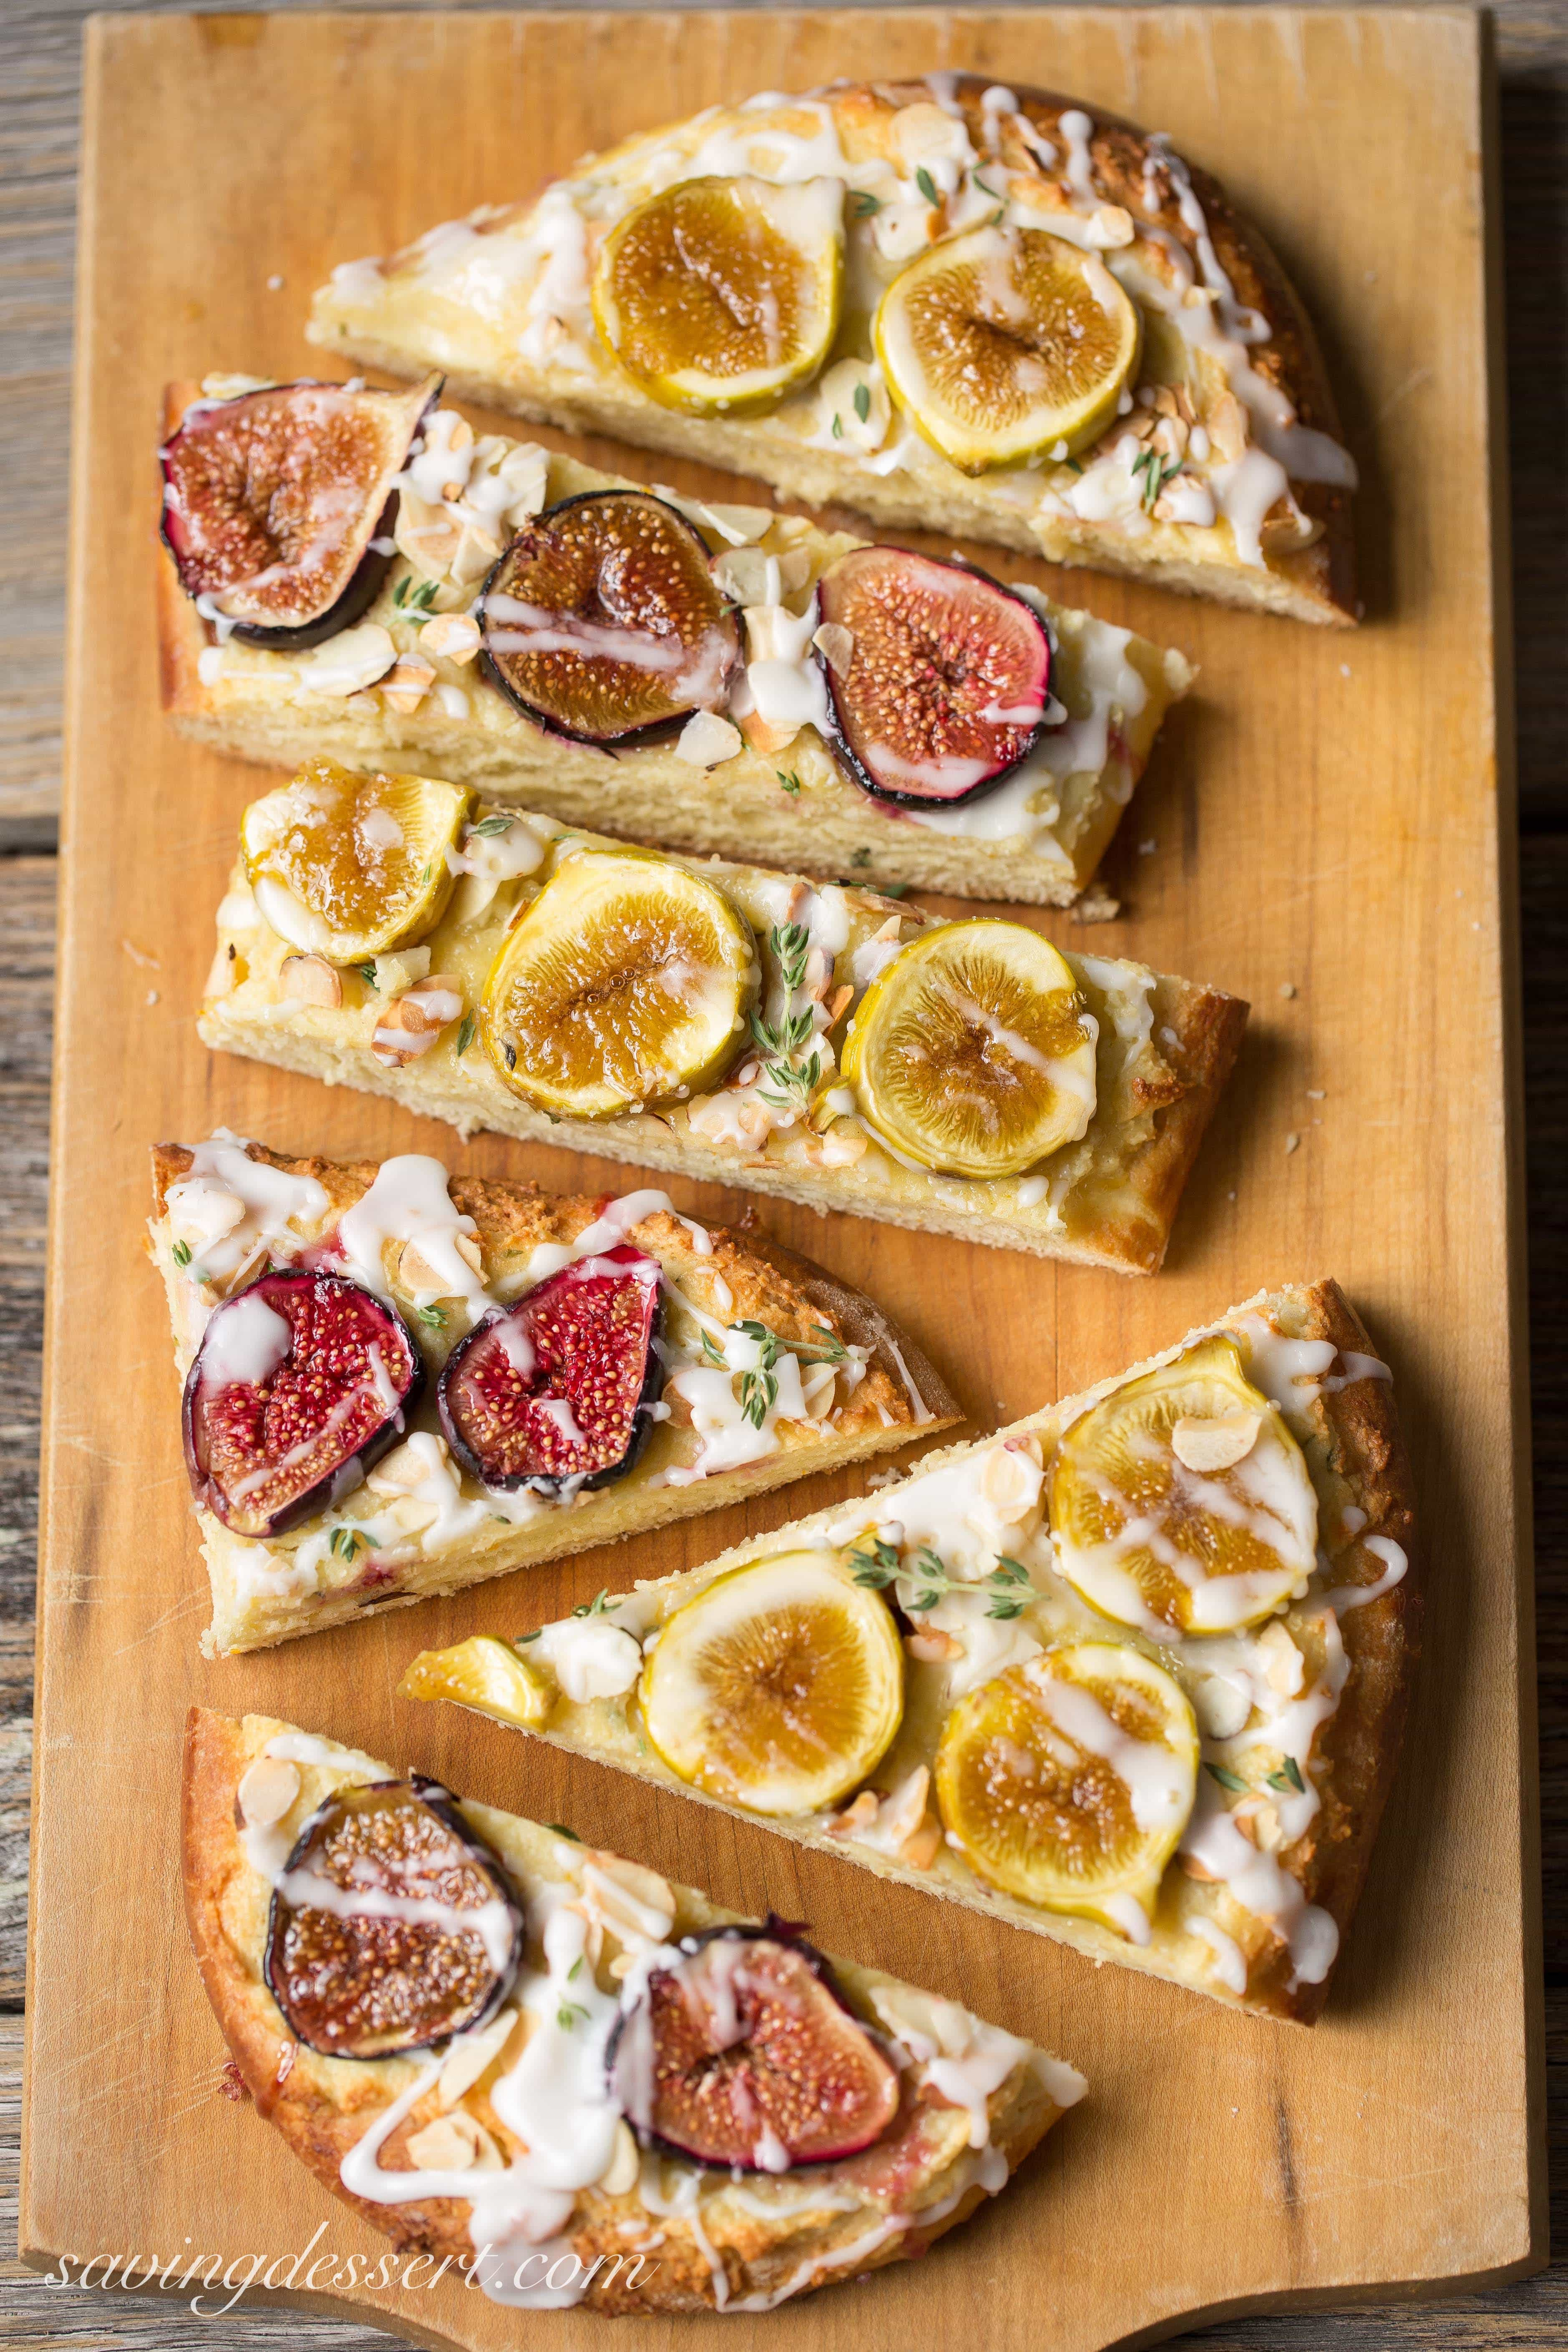 Communication on this topic: Sweet Ricotta and Orange Tart, sweet-ricotta-and-orange-tart/